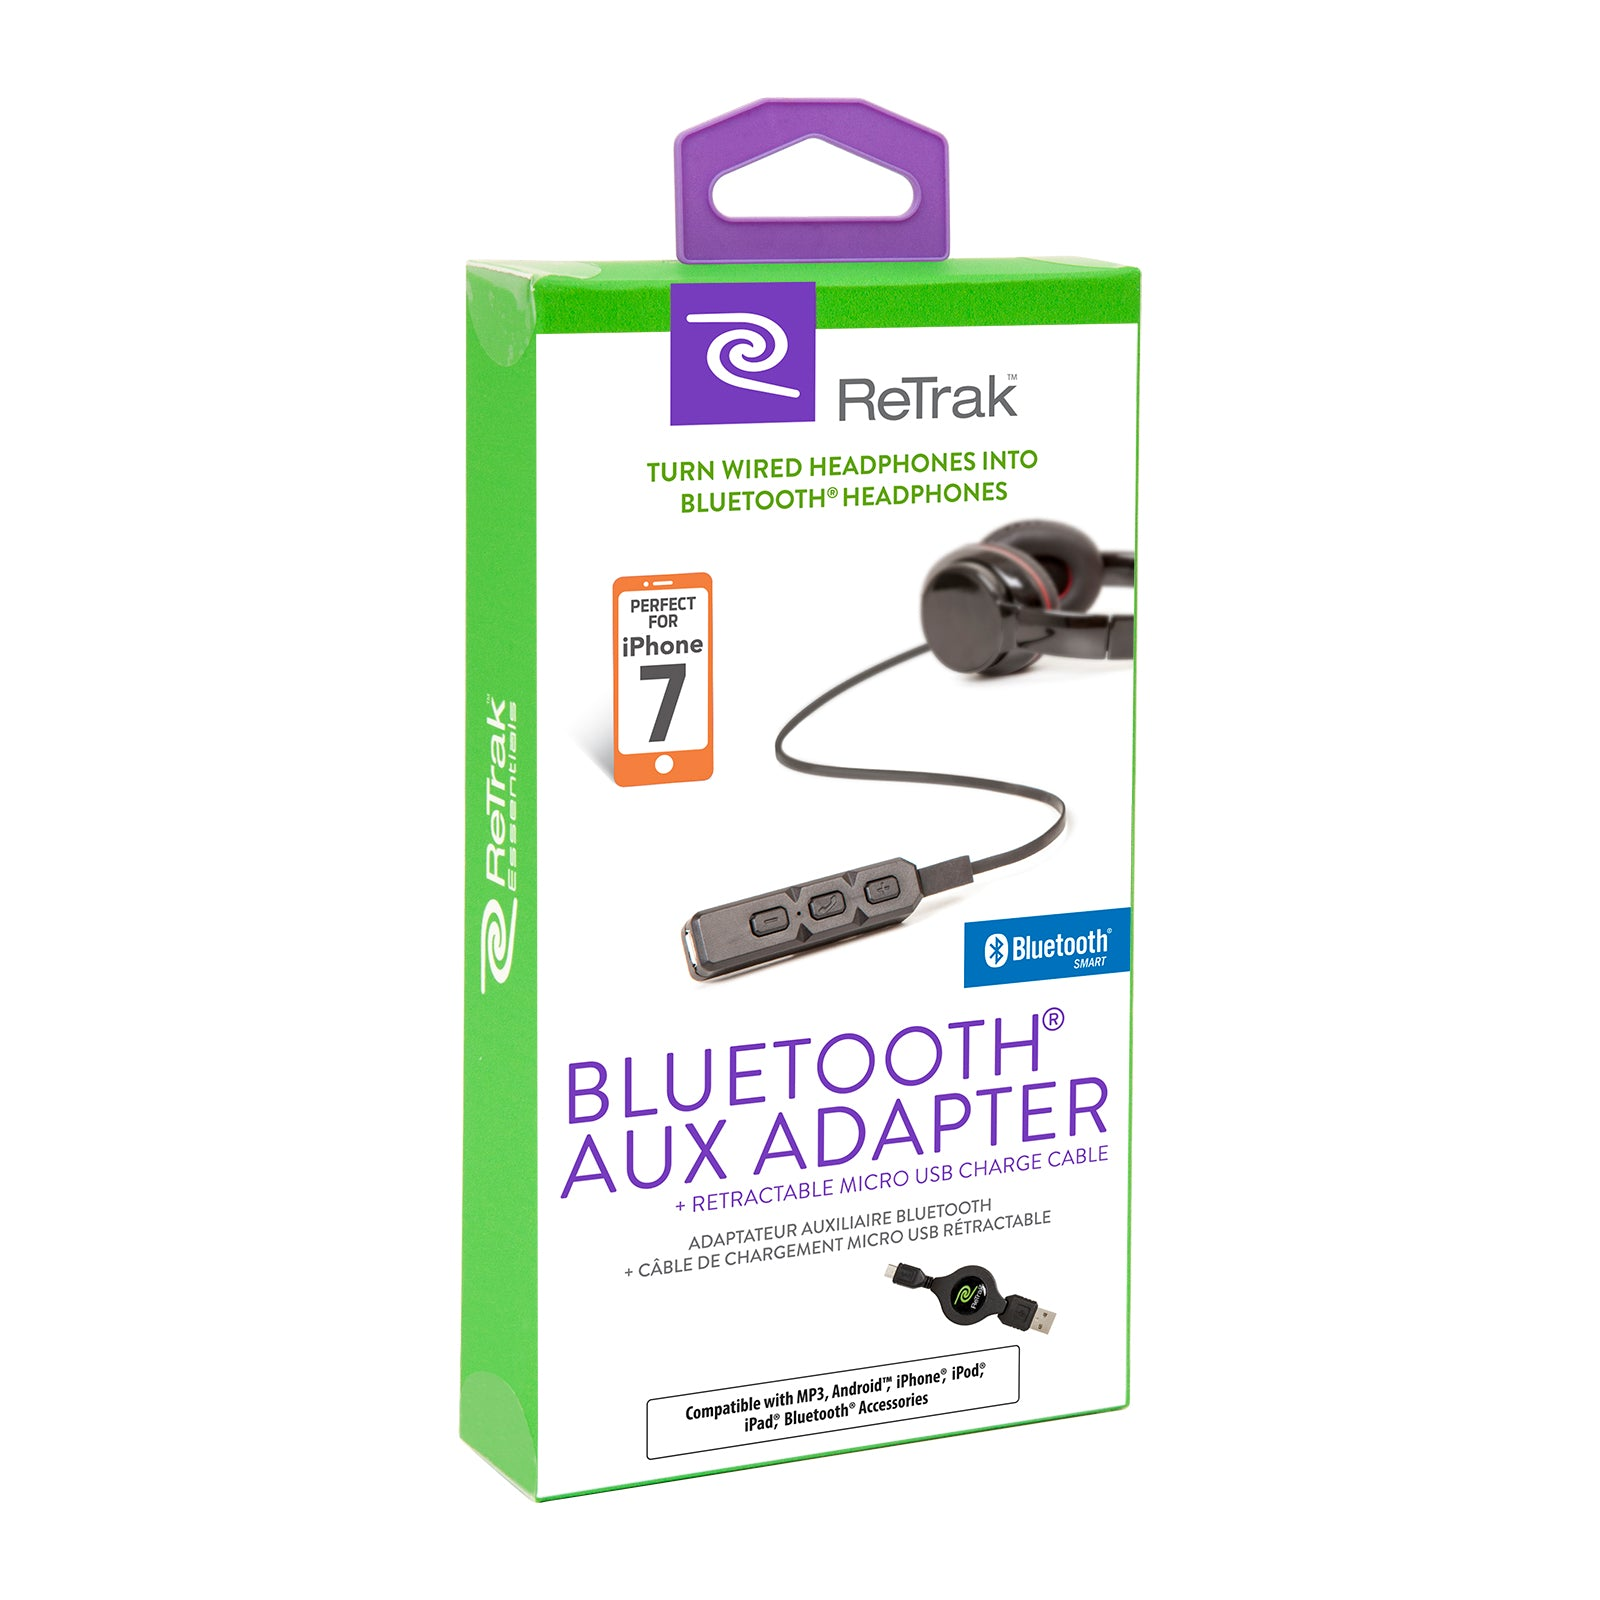 Bluetooth Aux Adaptor | Bluetooth AUX to 3.5mm Adaptor